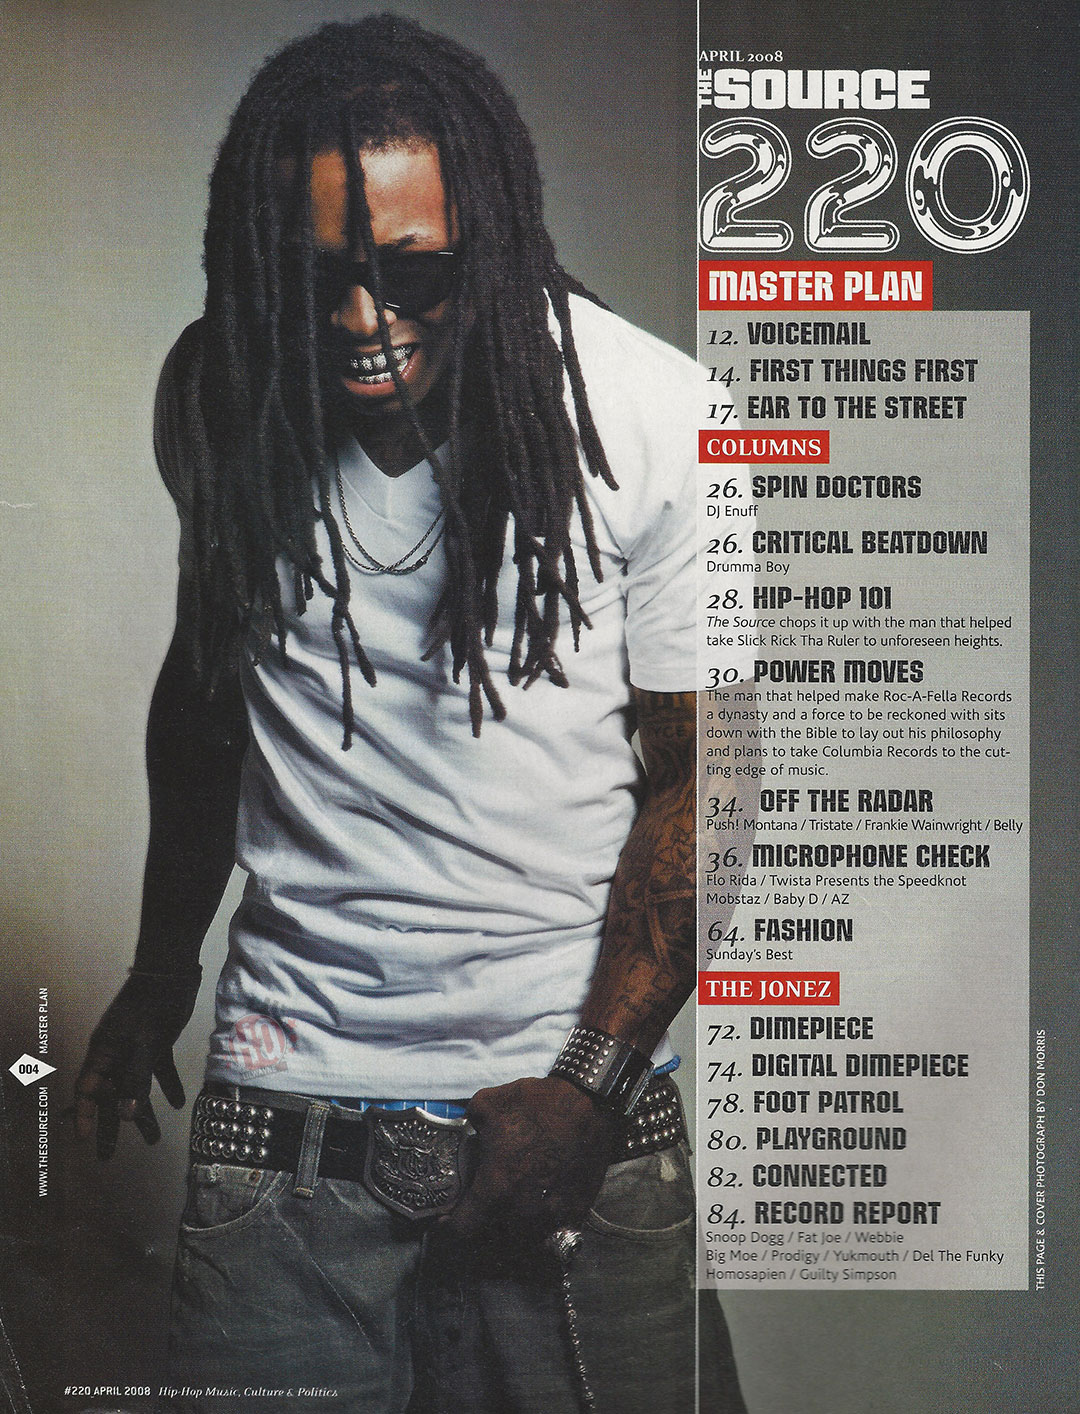 TBT Lil Wayne's Cover Story For The Source Mag's 20 Issue